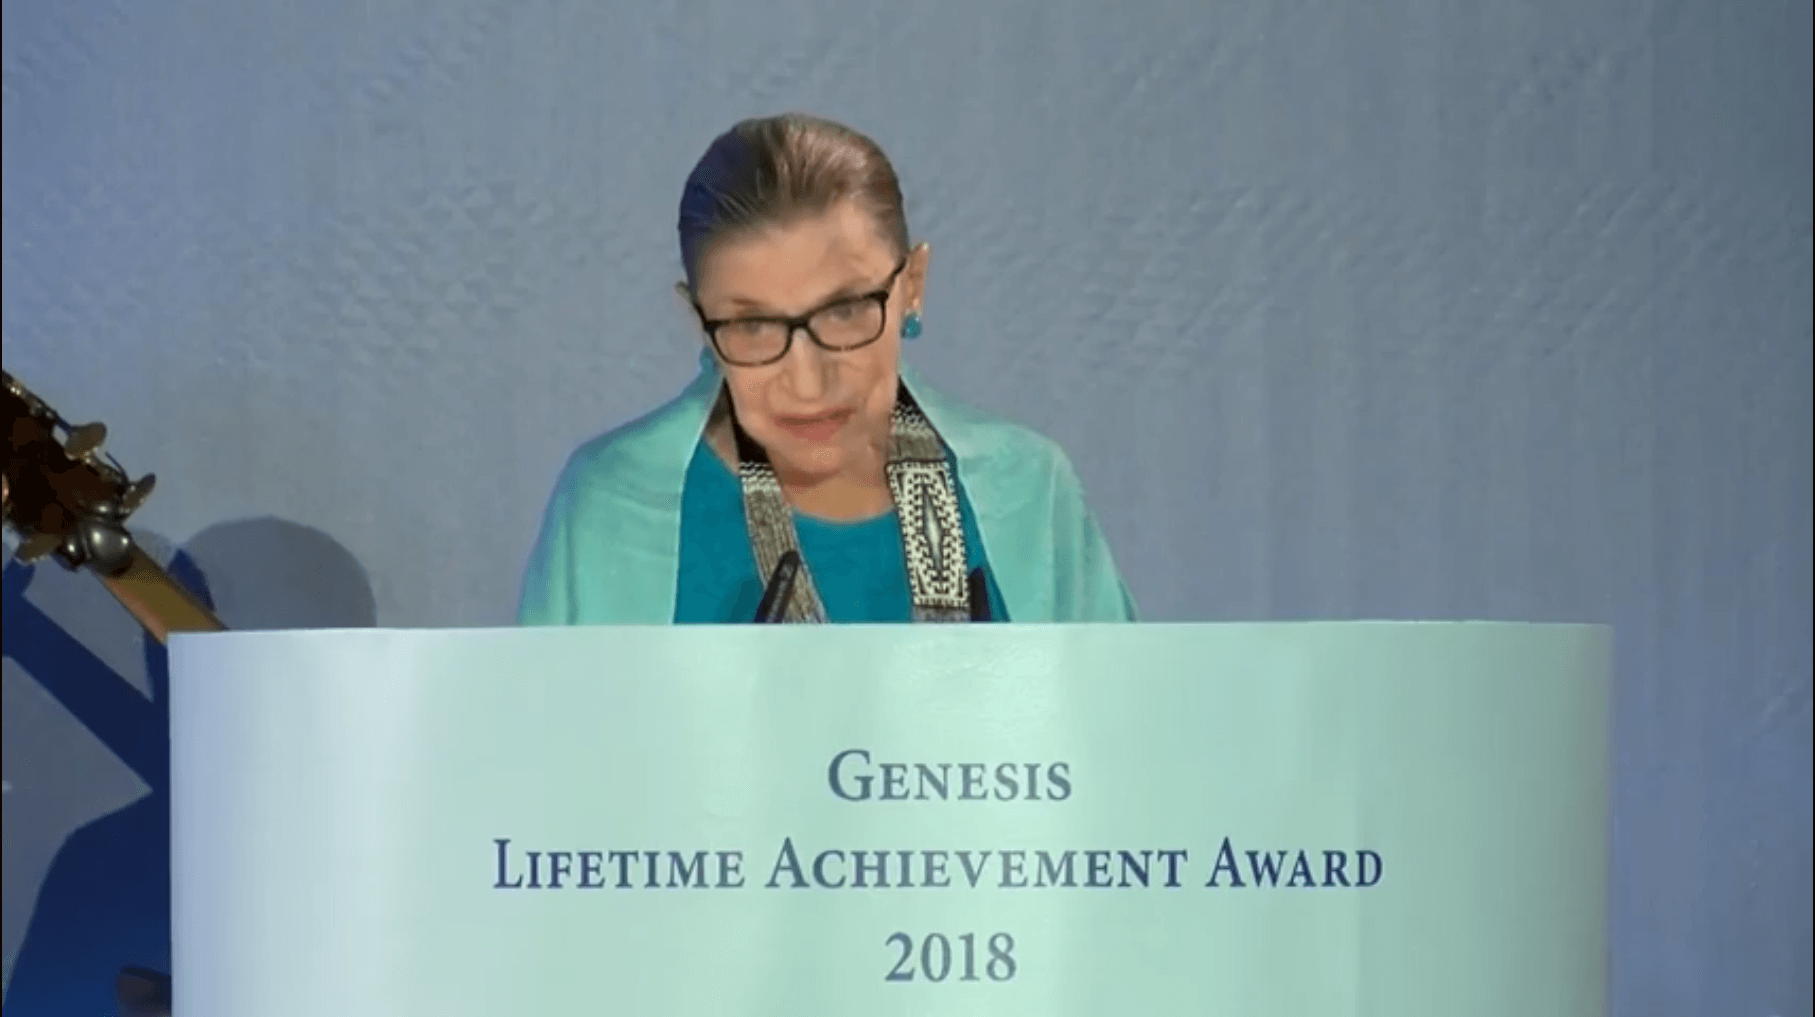 Accepting Israeli prize in 2018, RBG never mentioned Palestinians – Mondoweiss